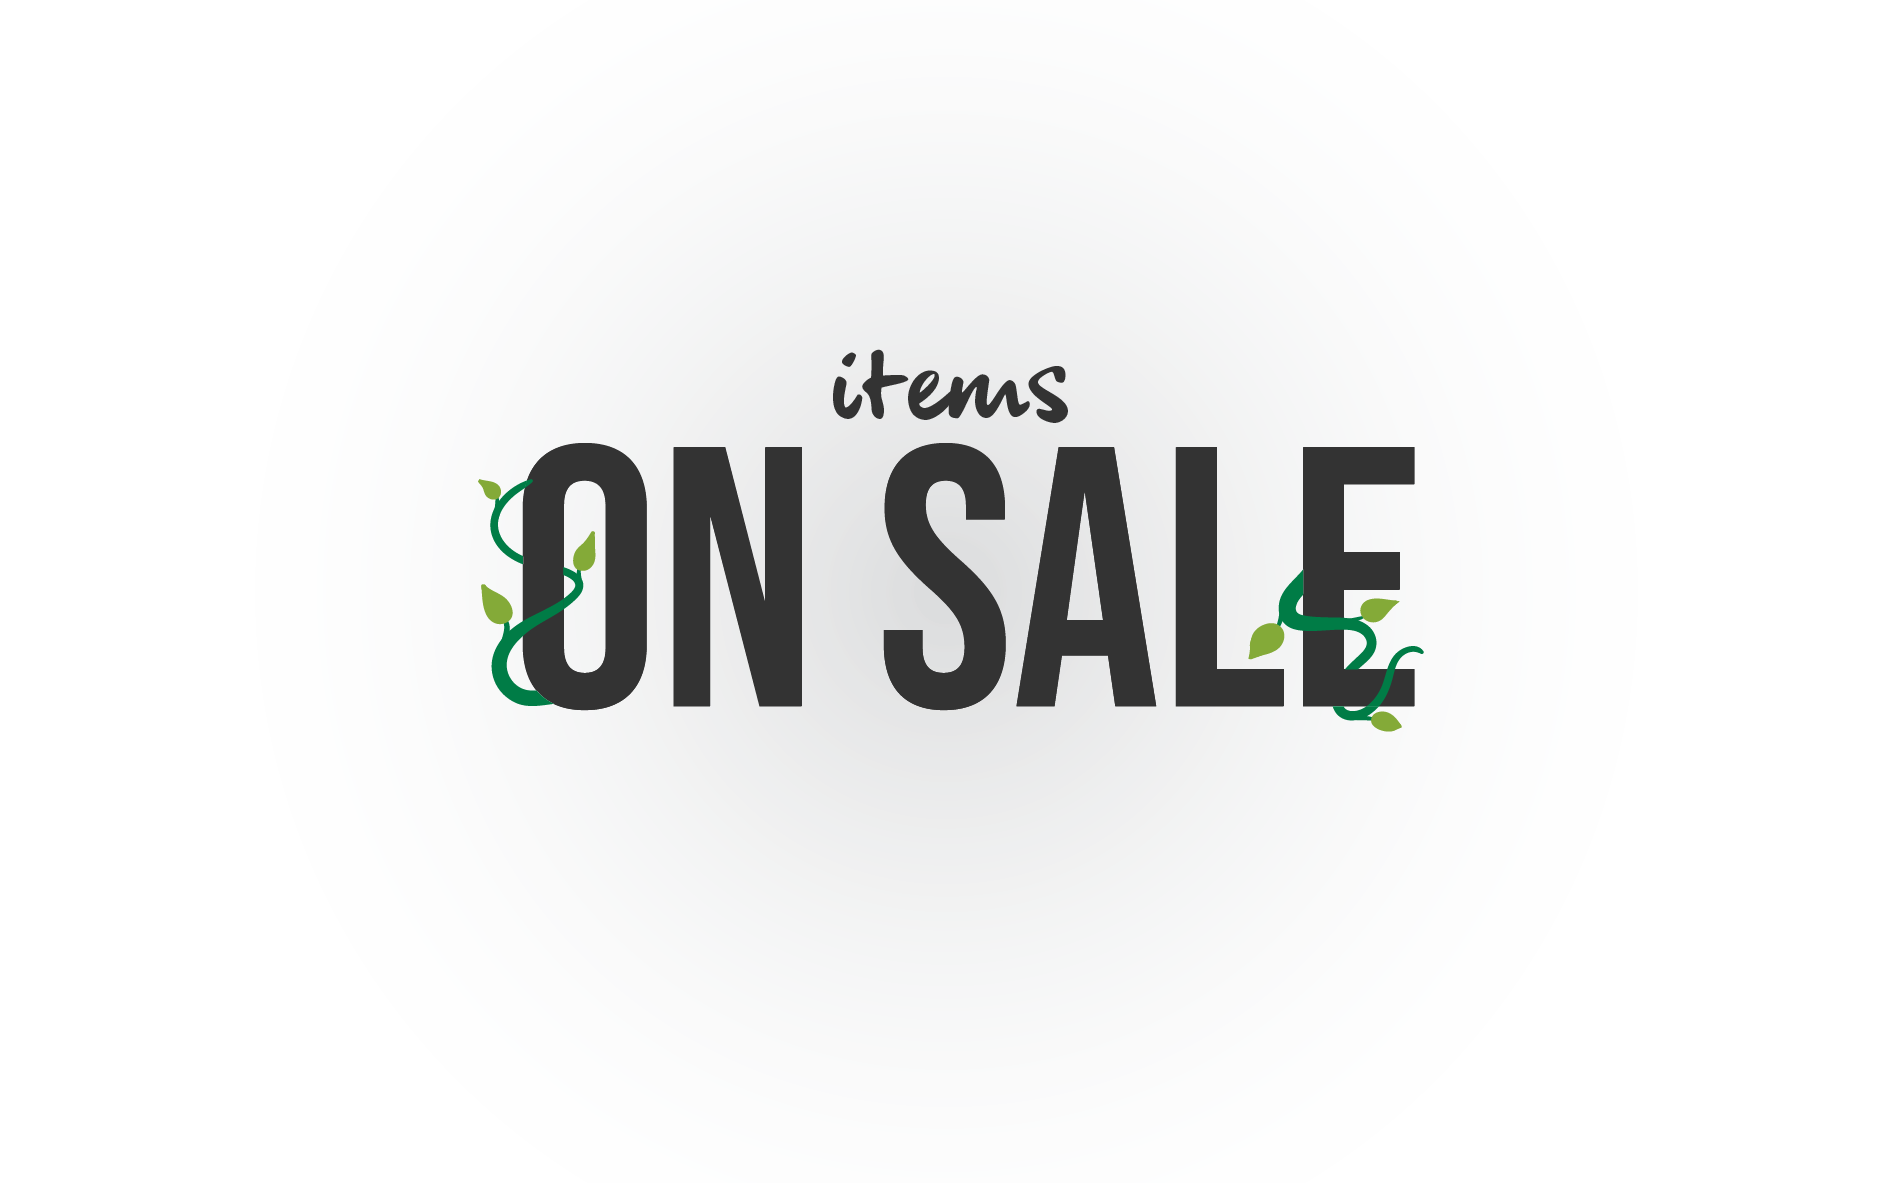 List for products on sale.